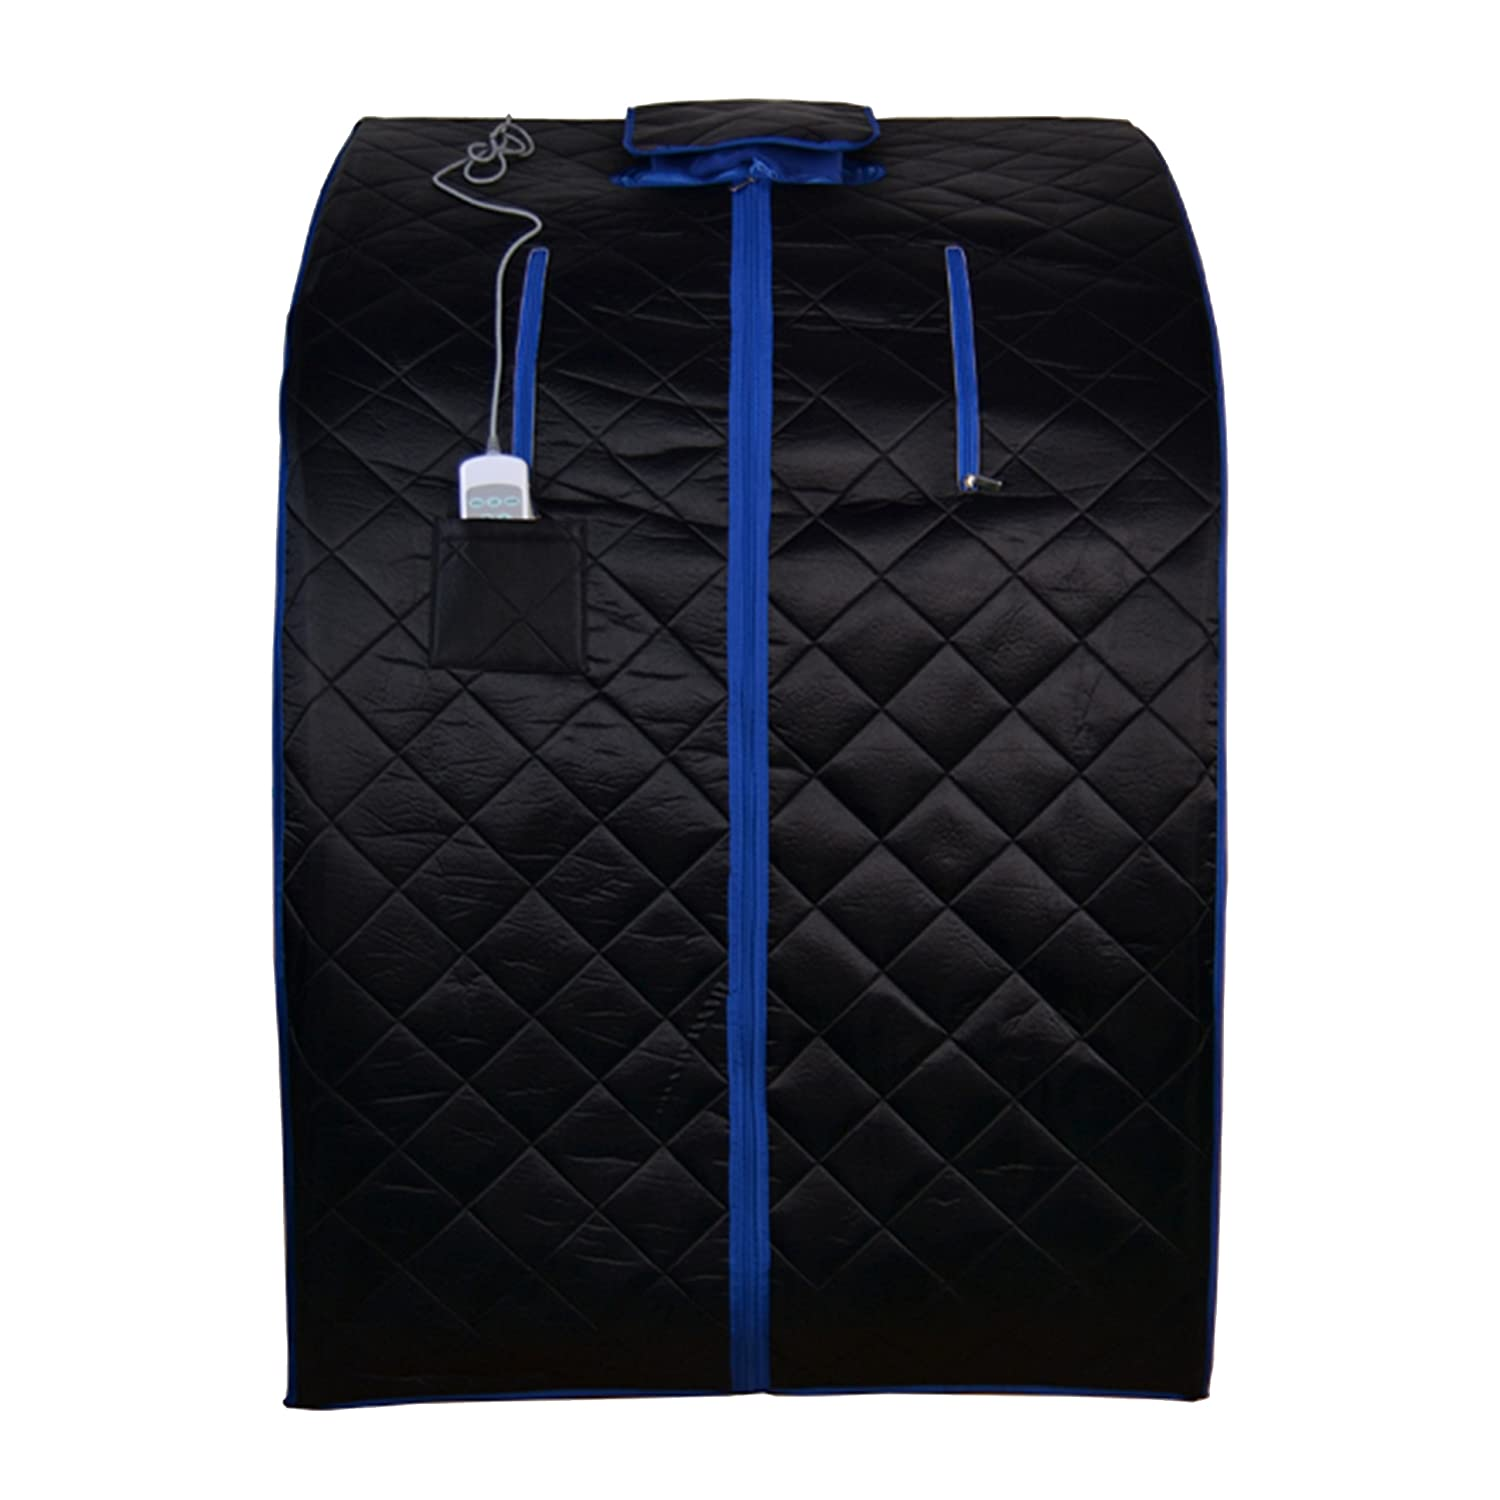 ALEKO PIN15BKBL Personal Folding Portable Home Infrared Sauna with Folding Chair and Foot Pad for Relaxation and Weight Loss 41 x 31 x 33 Inches Black with Blue Trim